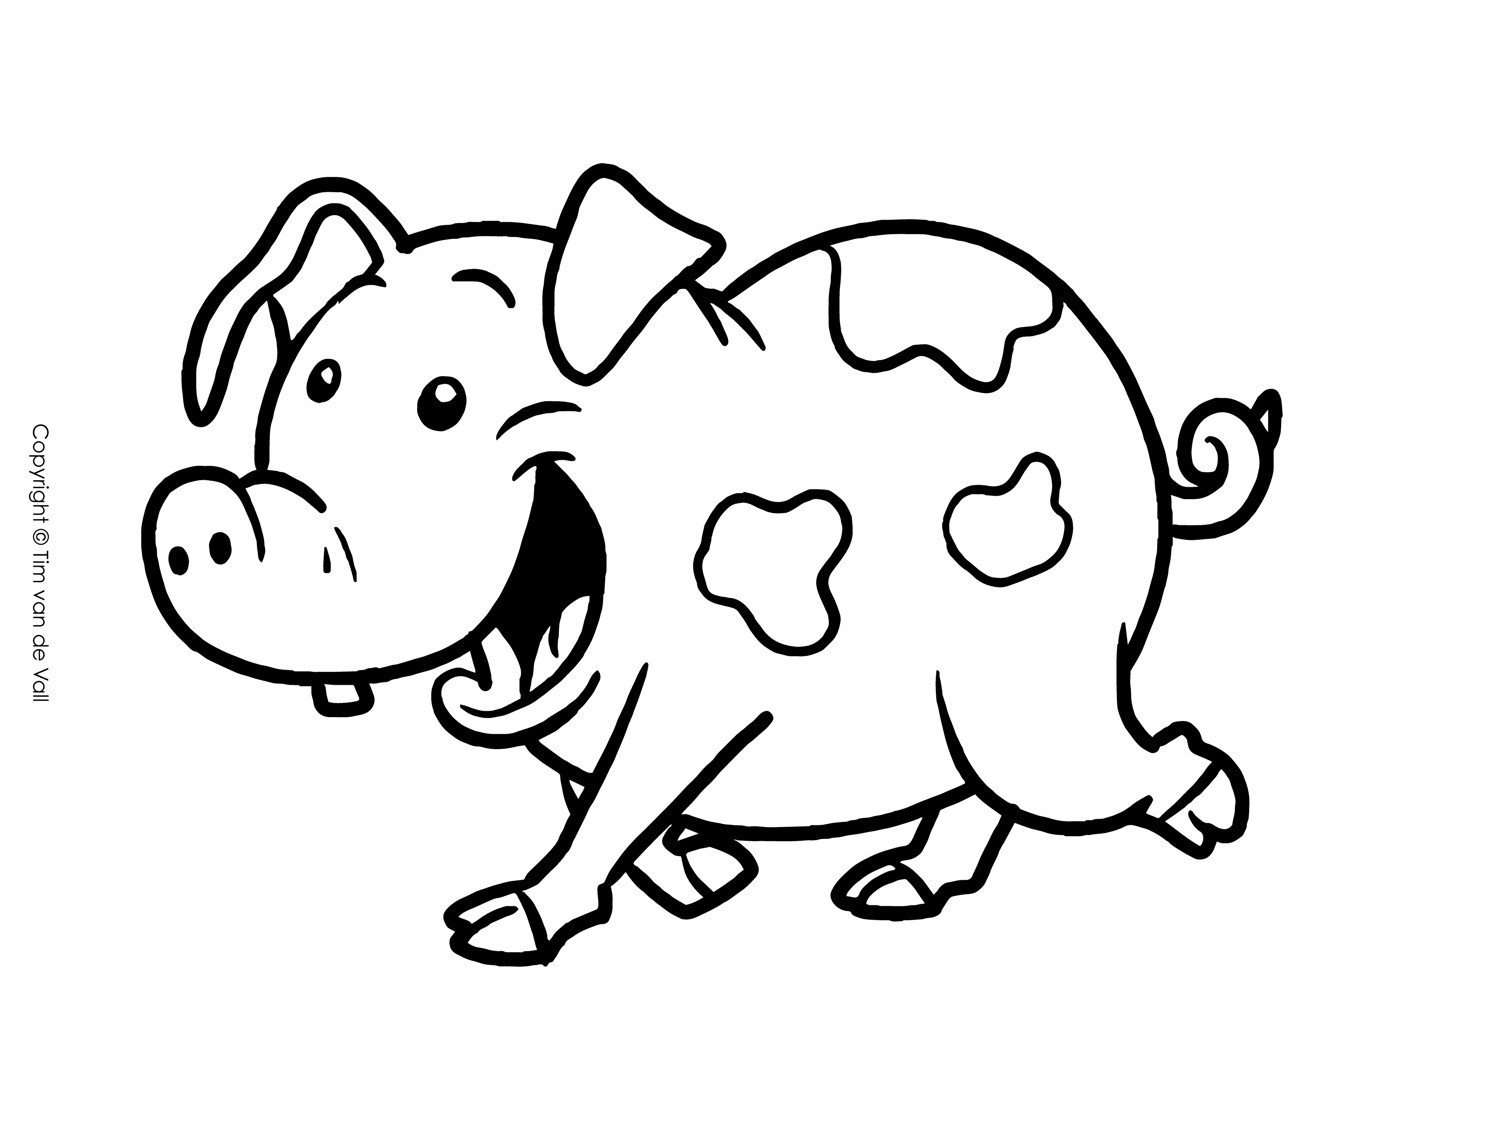 Best ideas about Pig Coloring Pages . Save or Pin Three Little Pigs Coloring Pages – The Three Little Pigs Story Now.